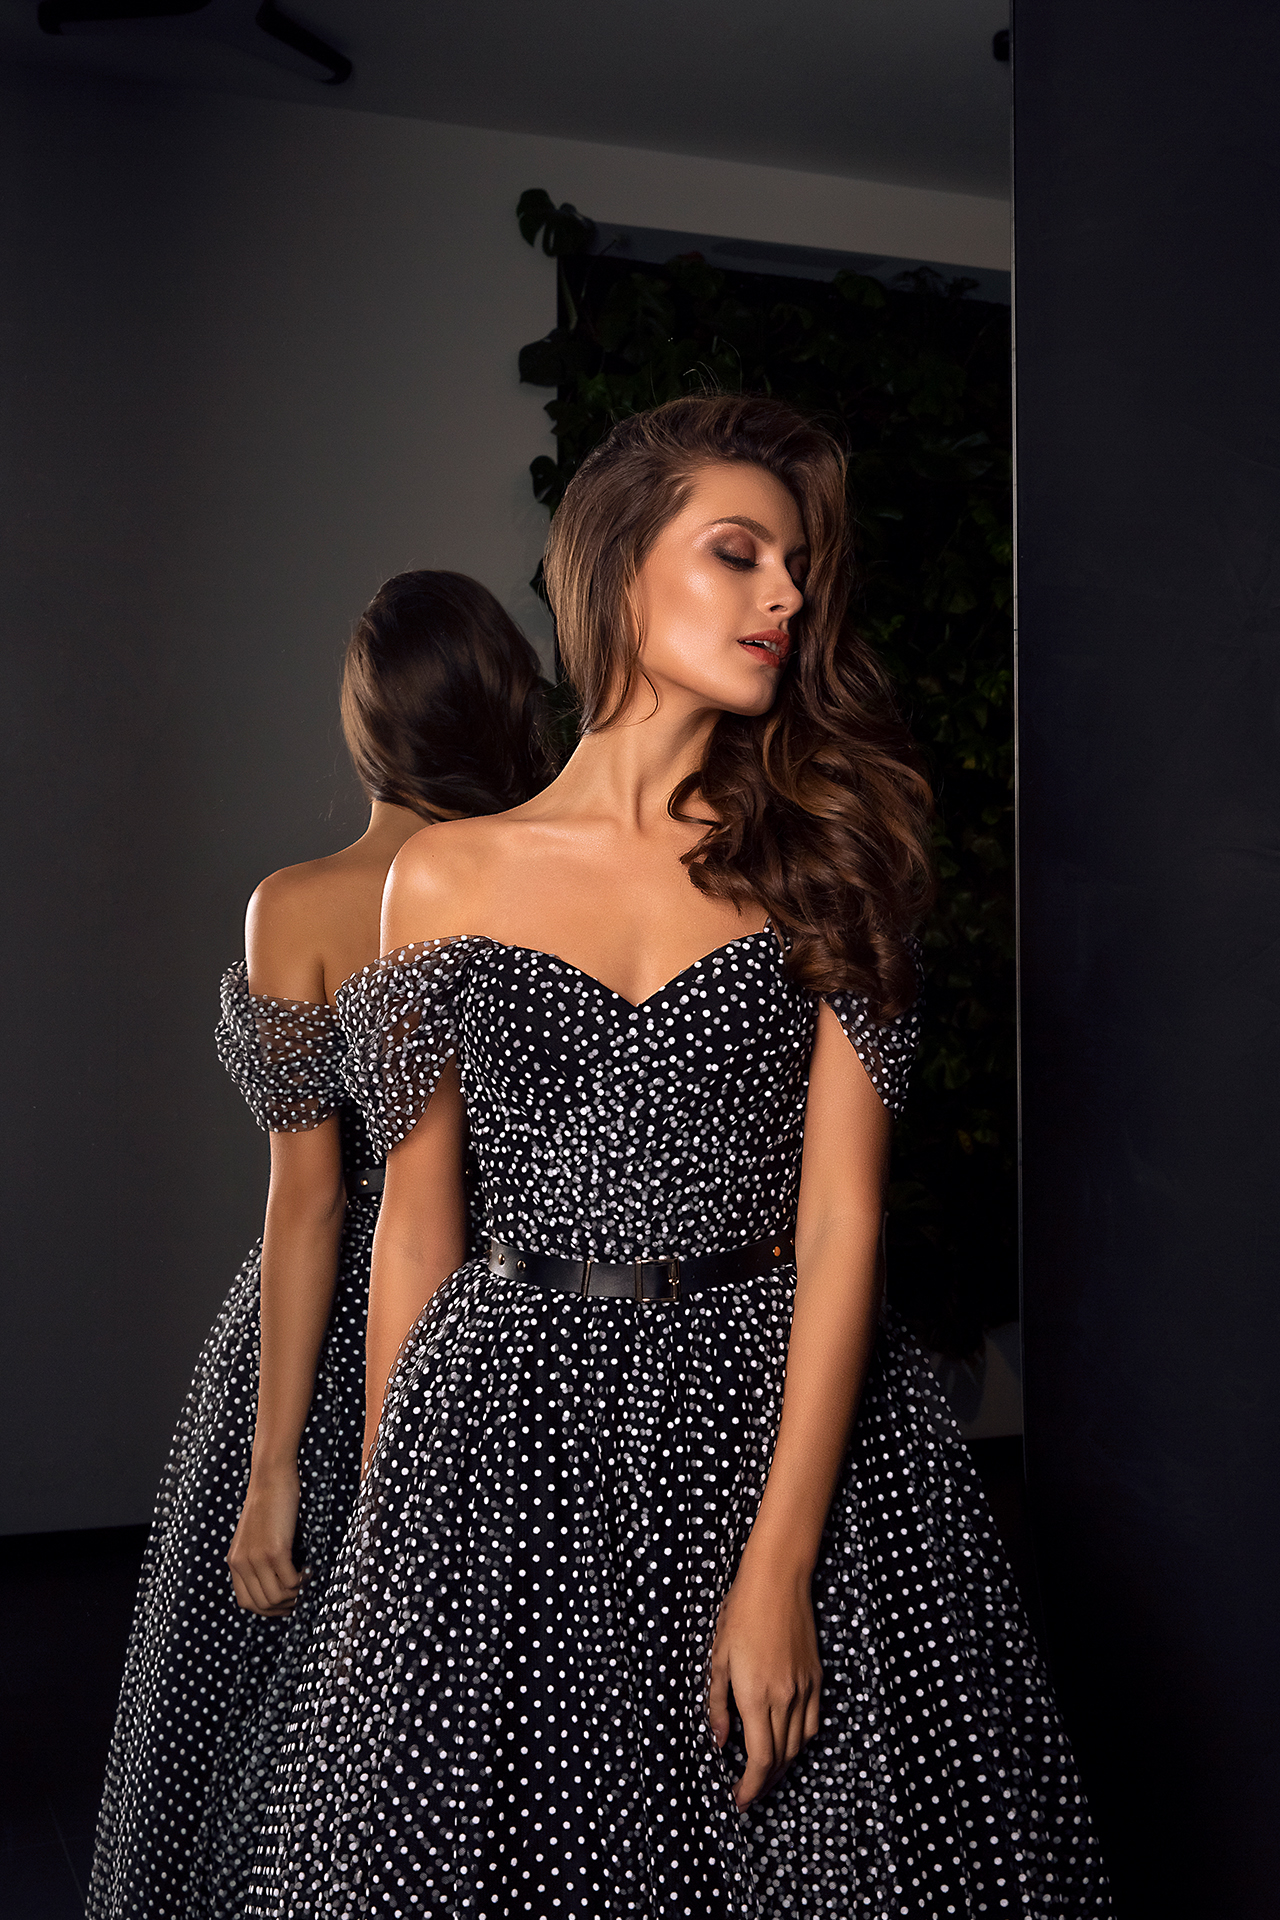 Evening Dresses 1542 Silhouette  A Line  Color  Black  Neckline  Sweetheart  Sleeves  Wide straps  Off the Shoulder Sleeves - foto 2